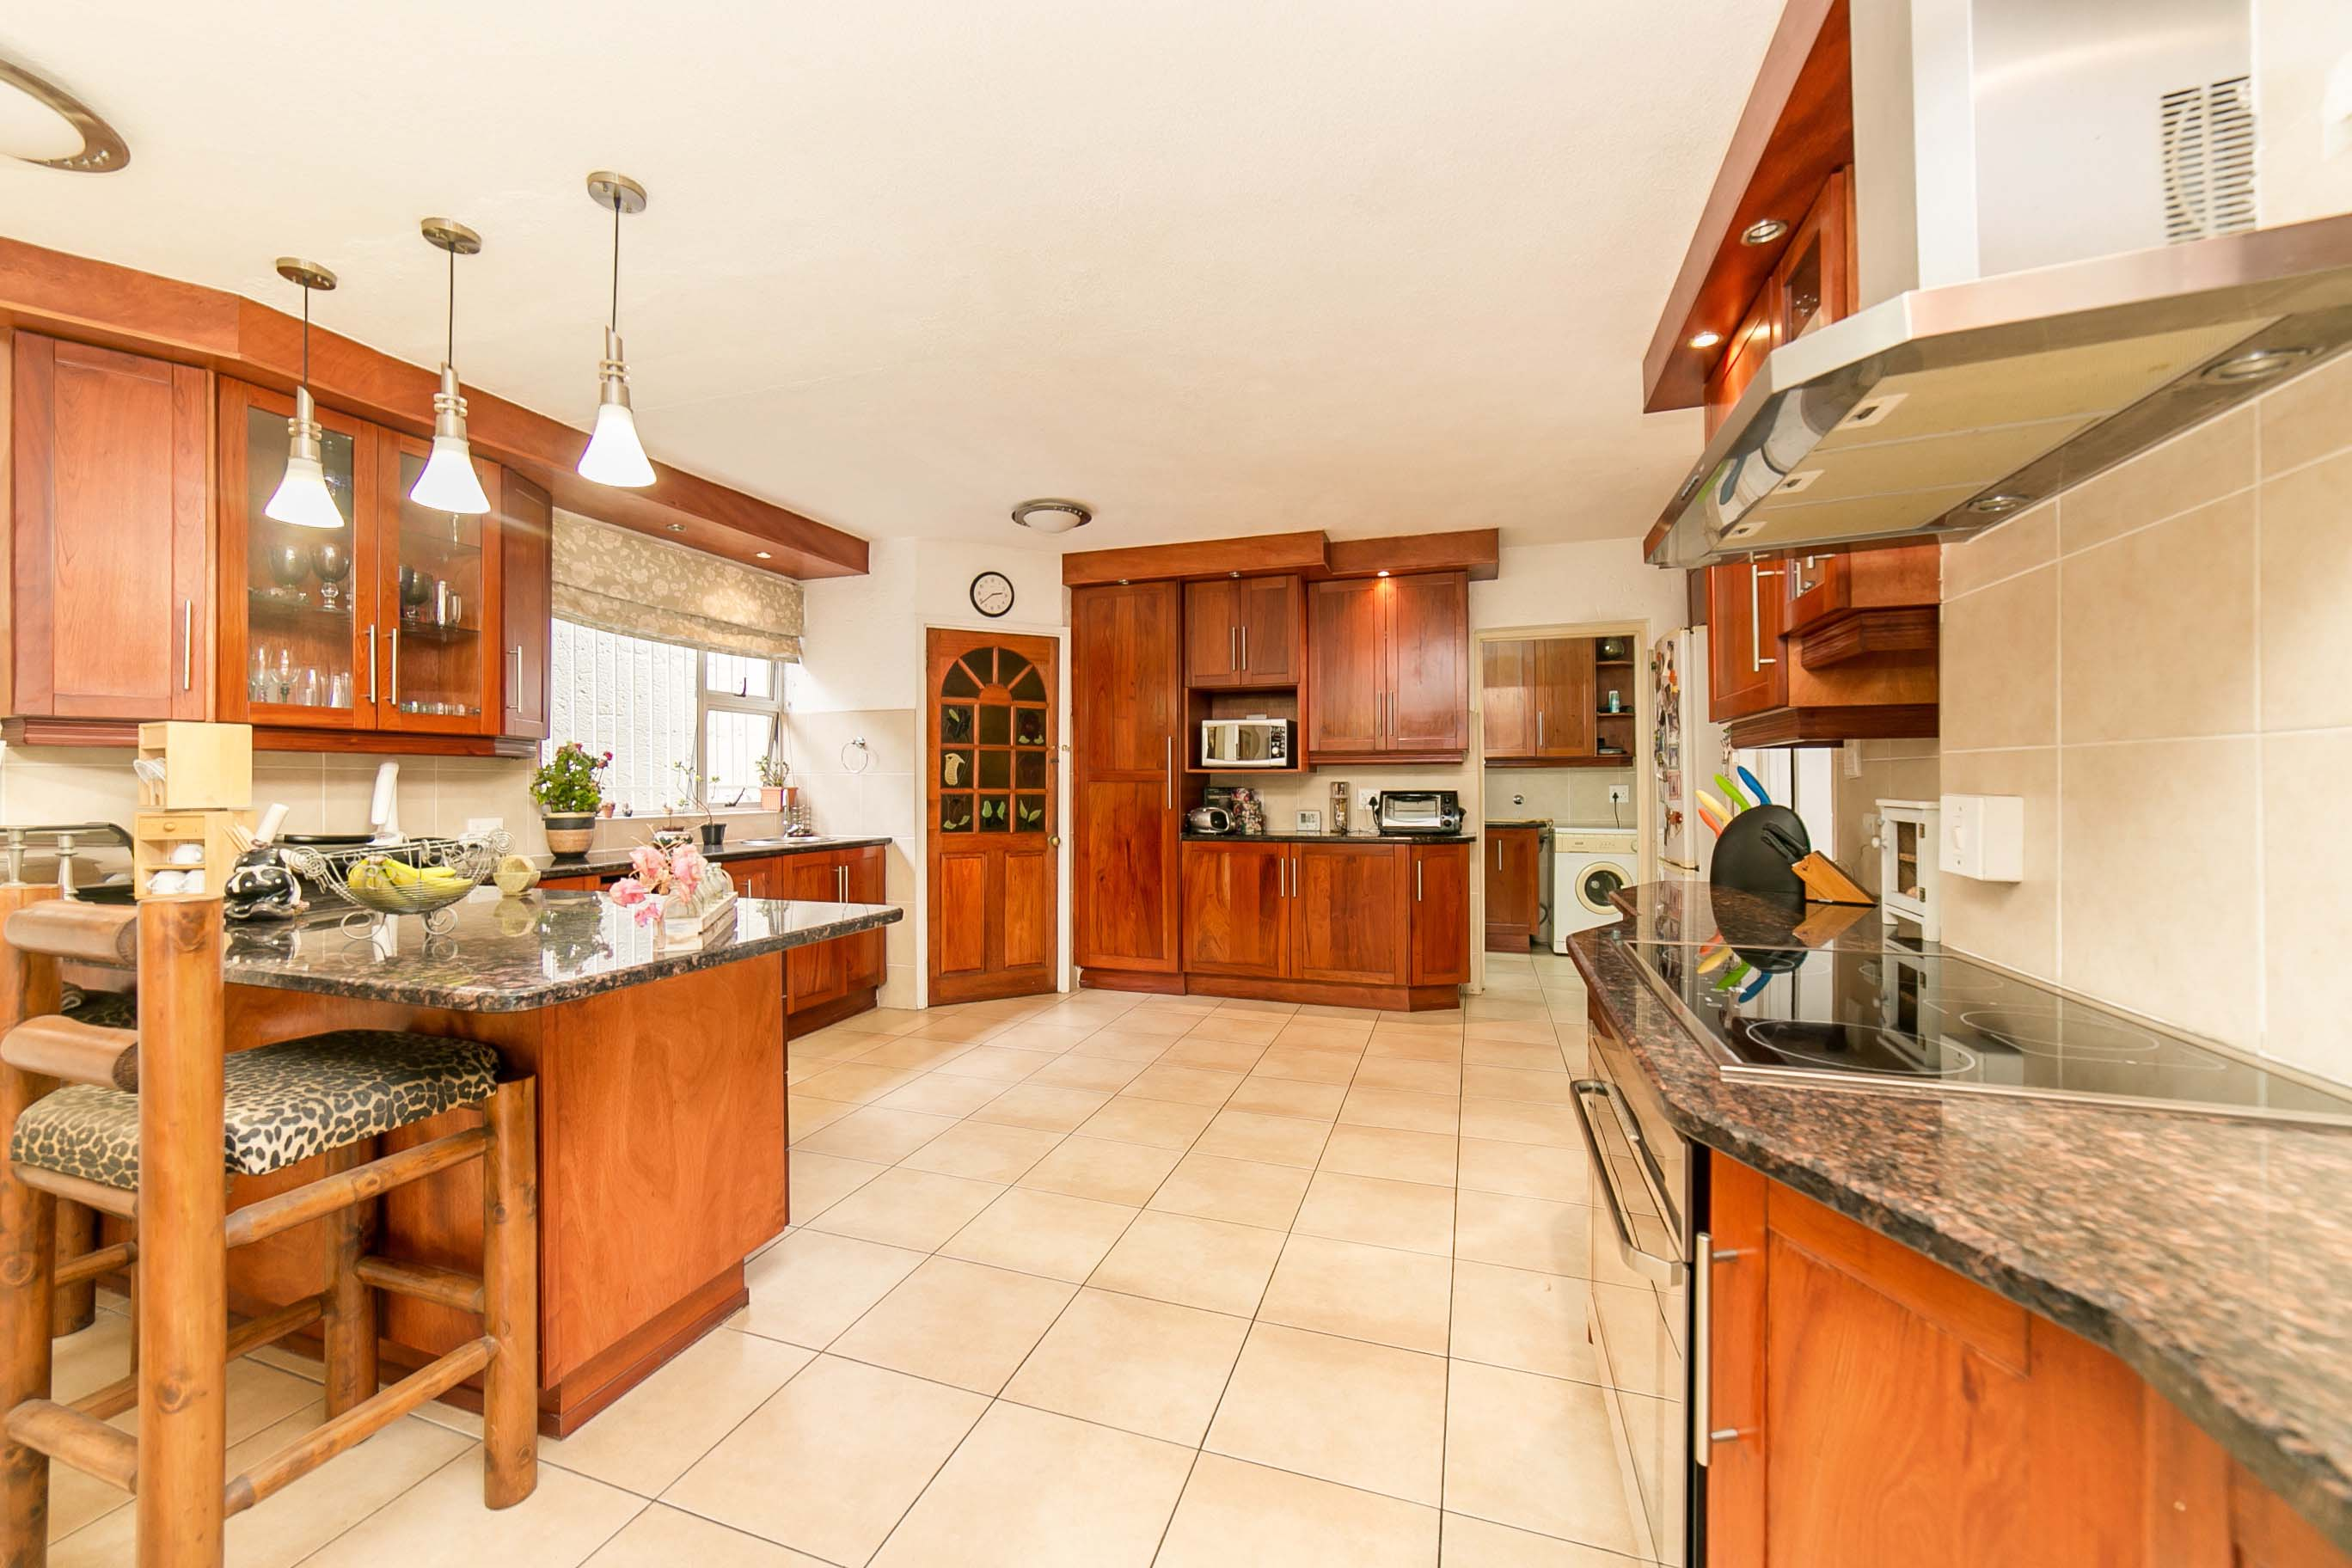 4 Bedroom House for sale in Lonehill ENT0082001 : photo#12